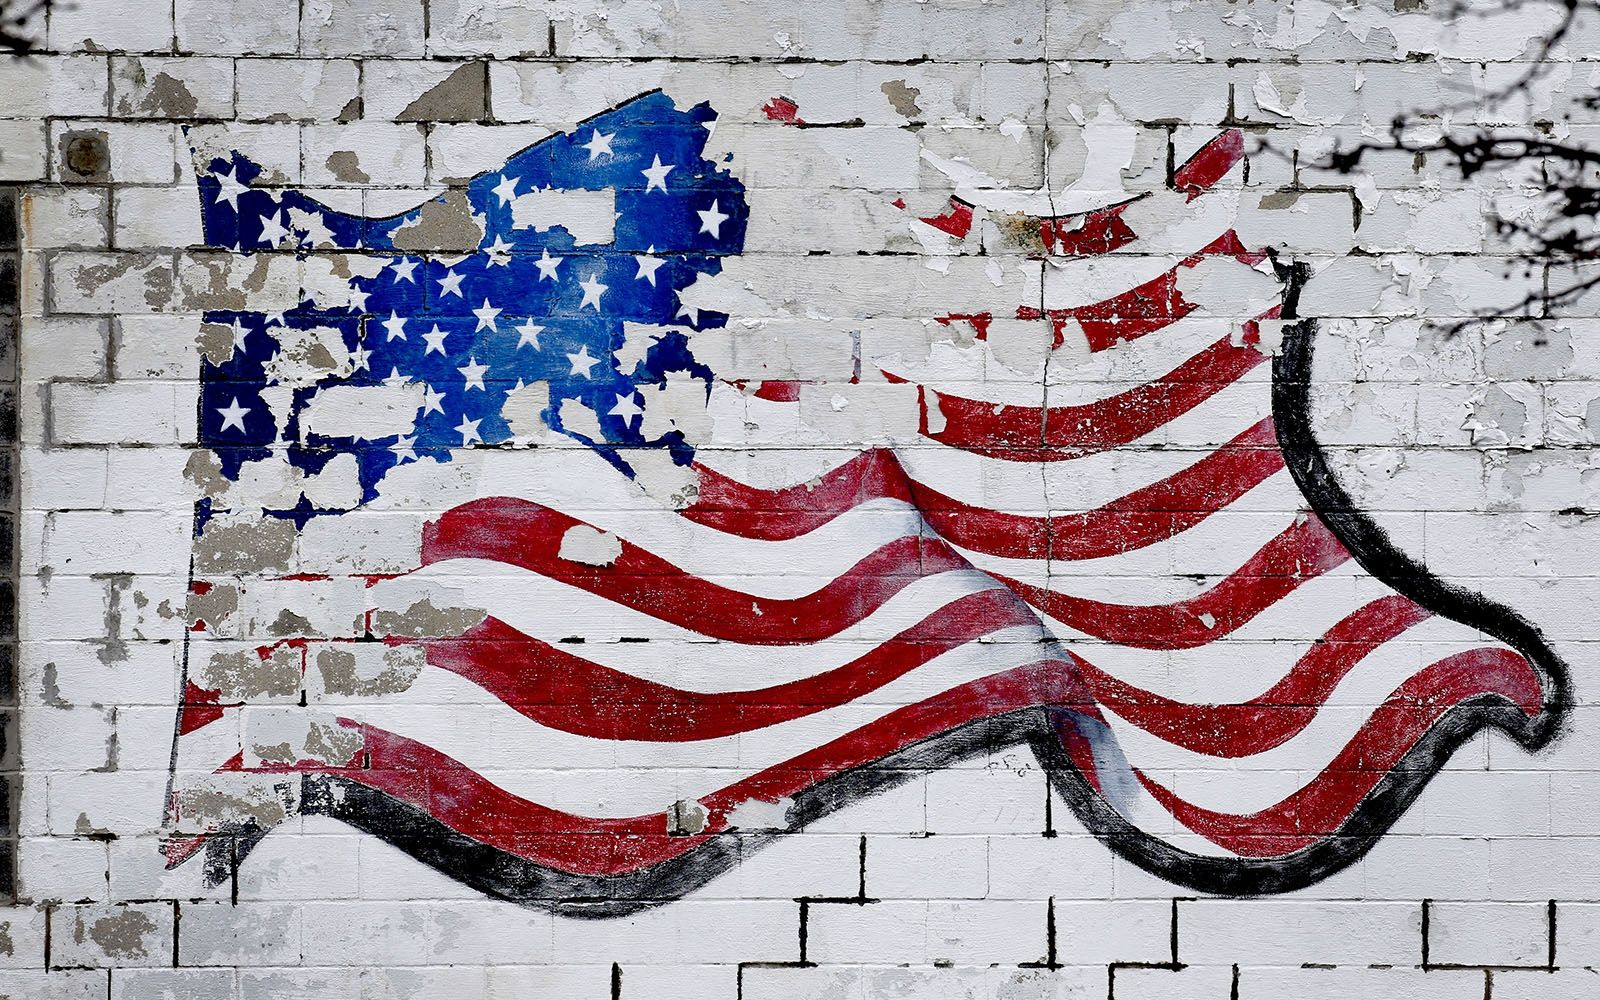 Day 17: Jan. 17, 2020 - Decades of exposure to the elements has faded the U.S. flag painted on the side wall of the old Metro Community News location on French Road in Cheektowaga.